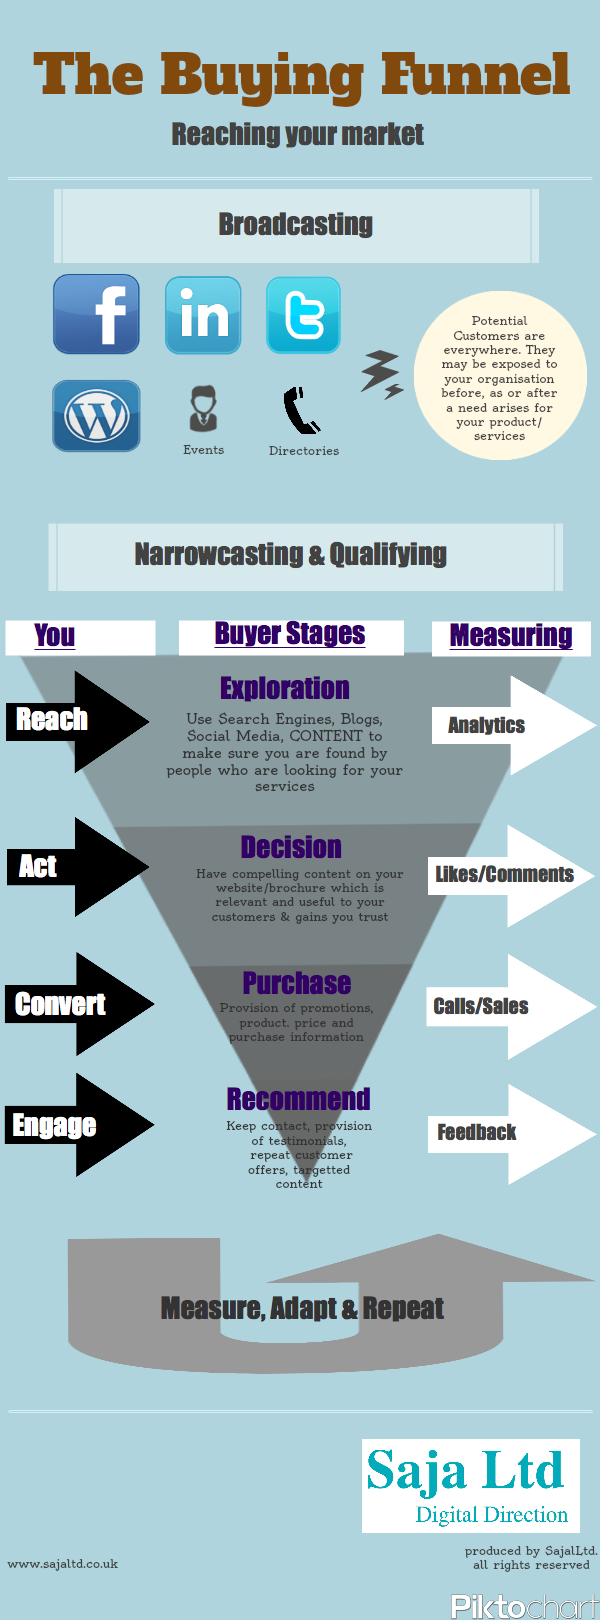 A marketing purchase decision funnel